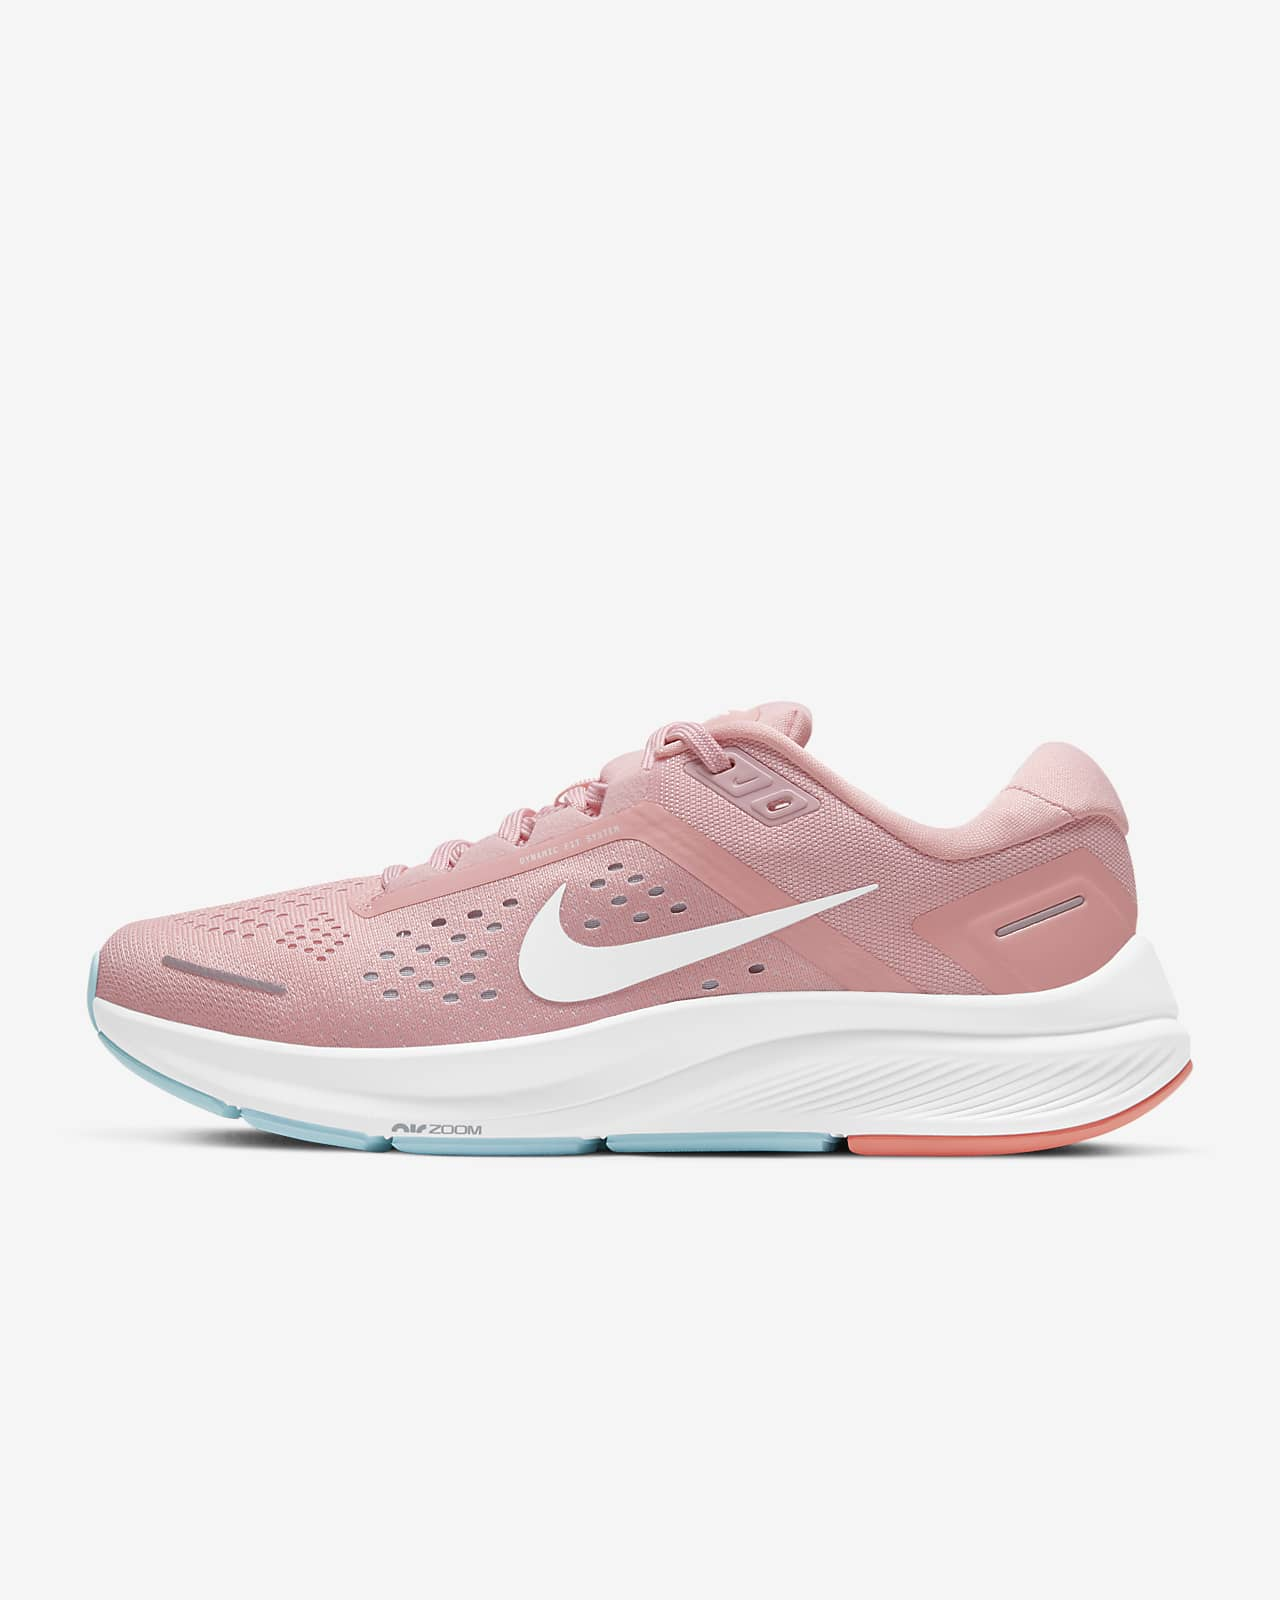 Nike Air Zoom Structure 23 女款跑鞋